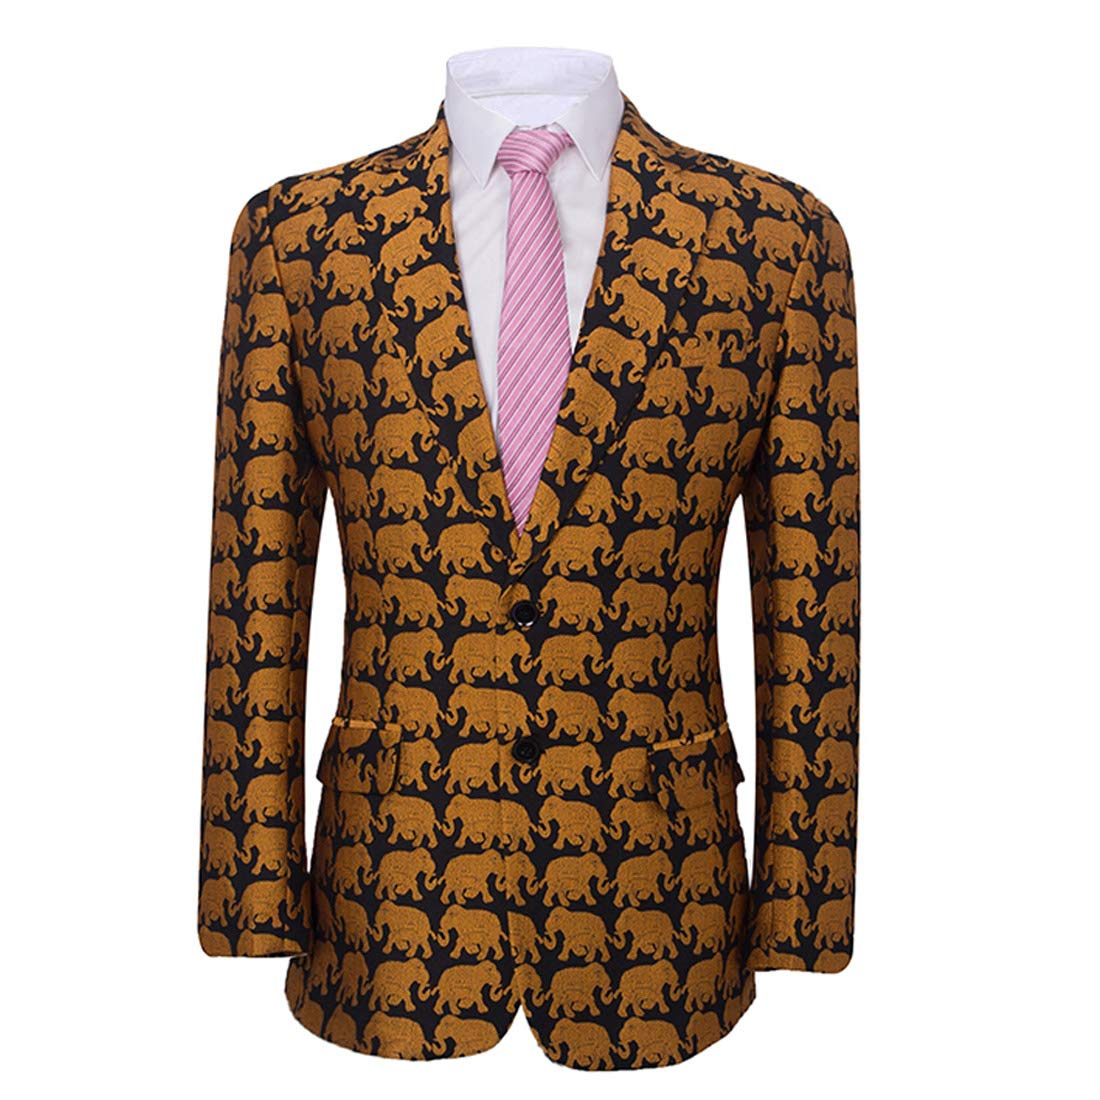 Abruzzomaster Animal Print Suit Blazers Groom Tuxedos Print Jacket for Groomsman Suit Gold Blazer Man Suit